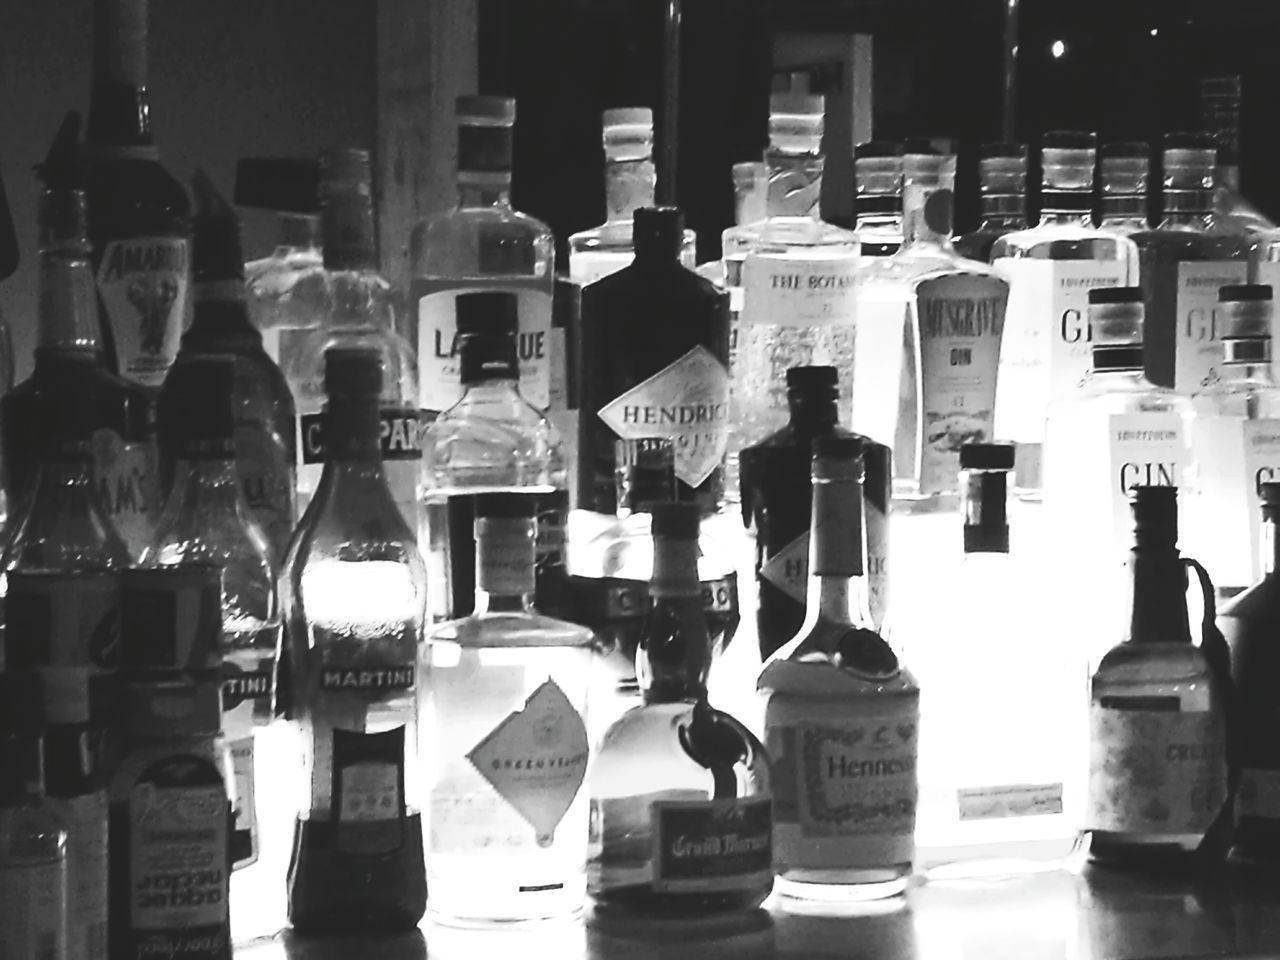 Monochrome Photography Large Group Of Objects Variation Choice Multi Colored Arrangement Variation Choice Large Group Of Objects Multi Colored Arrangement Collection Shelf Order Retail  Freshness No People All Different Types Of Gin Stunning Beauty  Display Shelf In A Bar Overnight Success